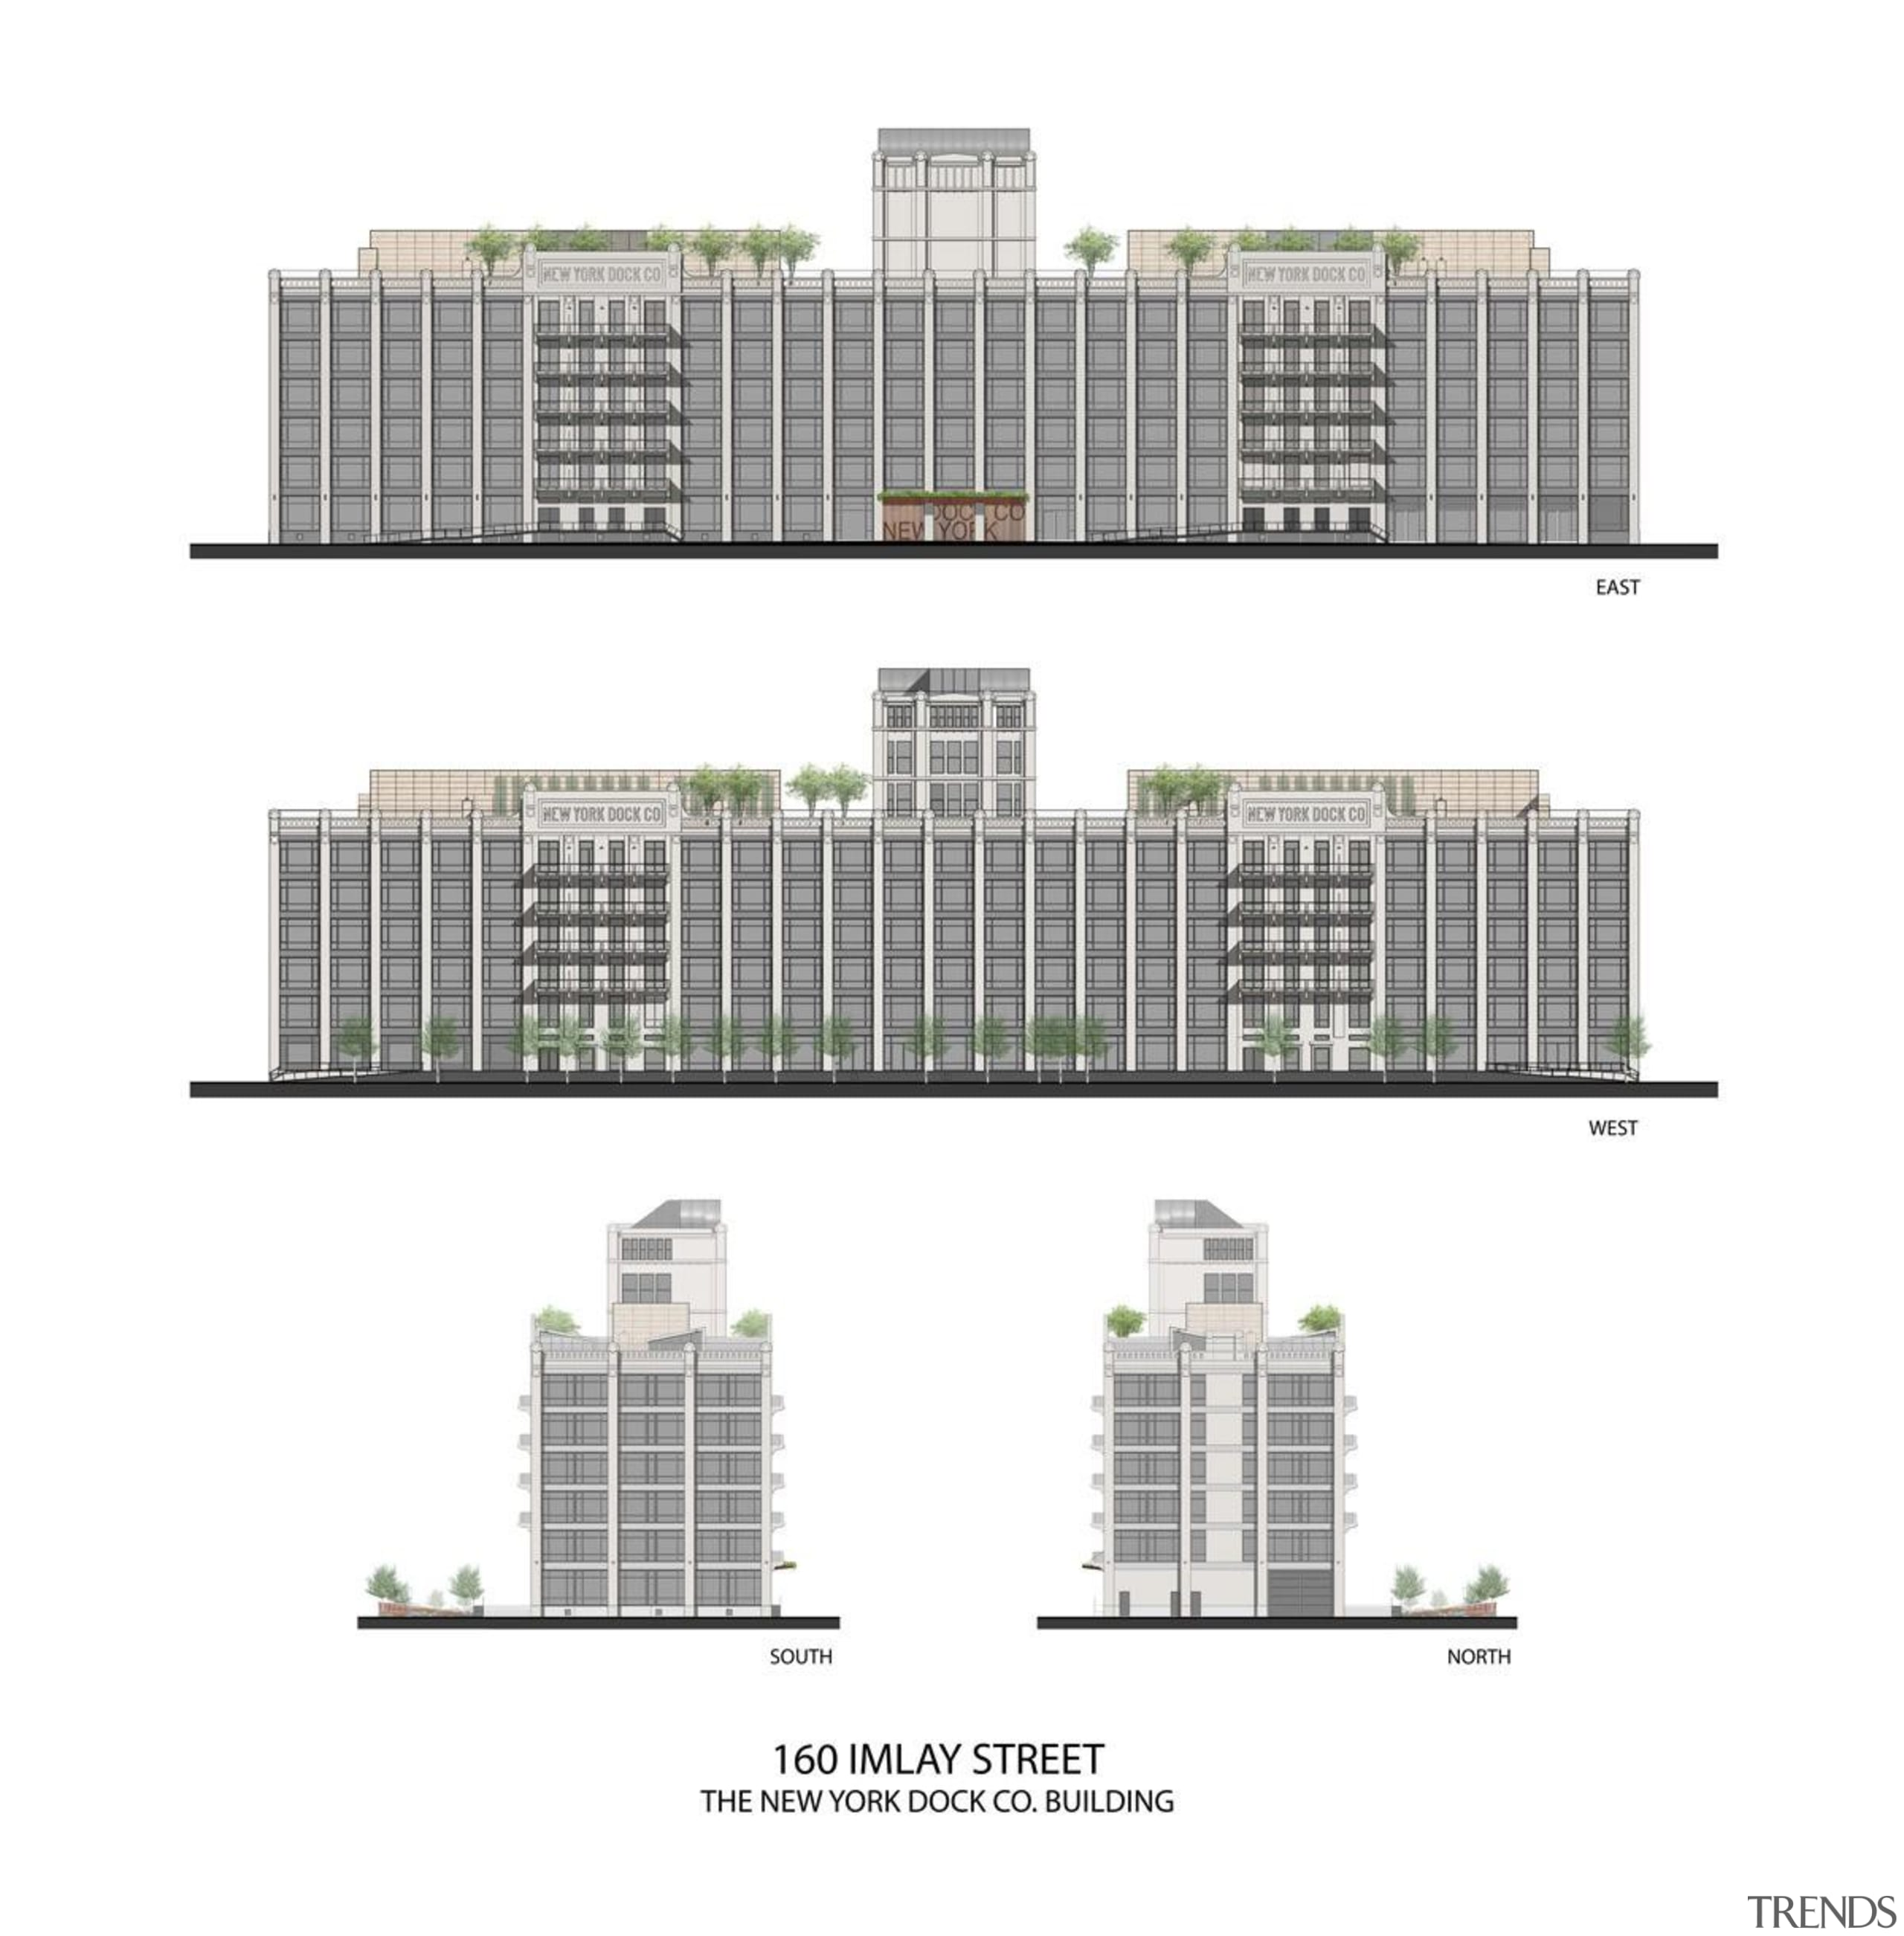 AA Studio is currently in the process of architecture, building, diagram, elevation, facade, mixed use, plan, product design, residential area, structure, urban design, white